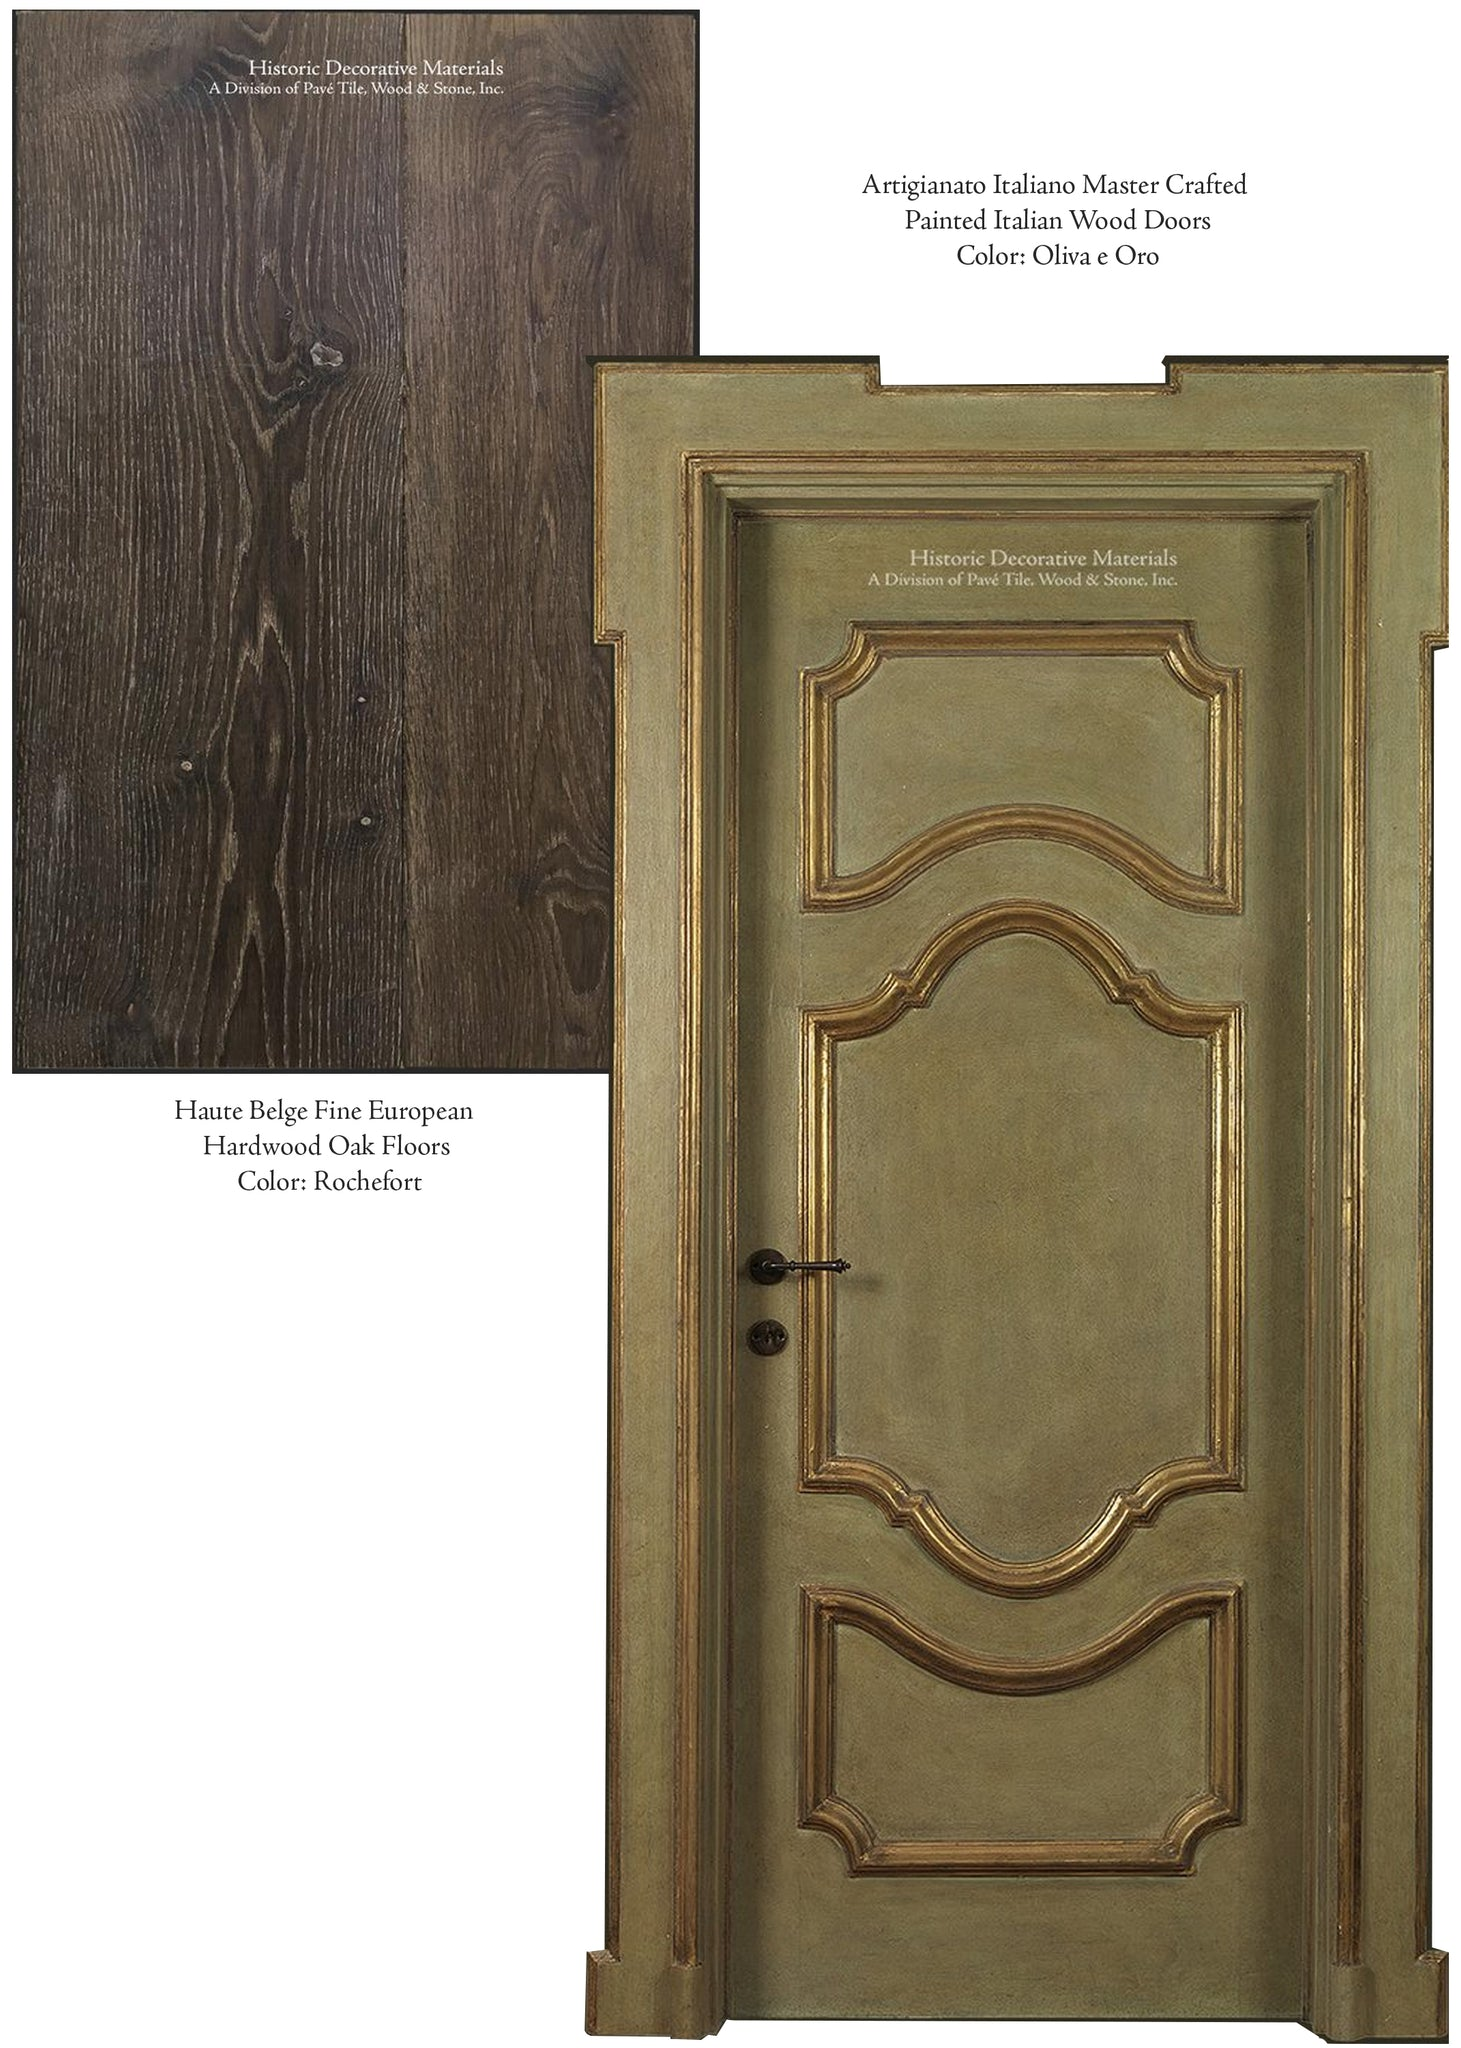 Hardwood European oak Floor and Italian Hand Painted Wood Doors